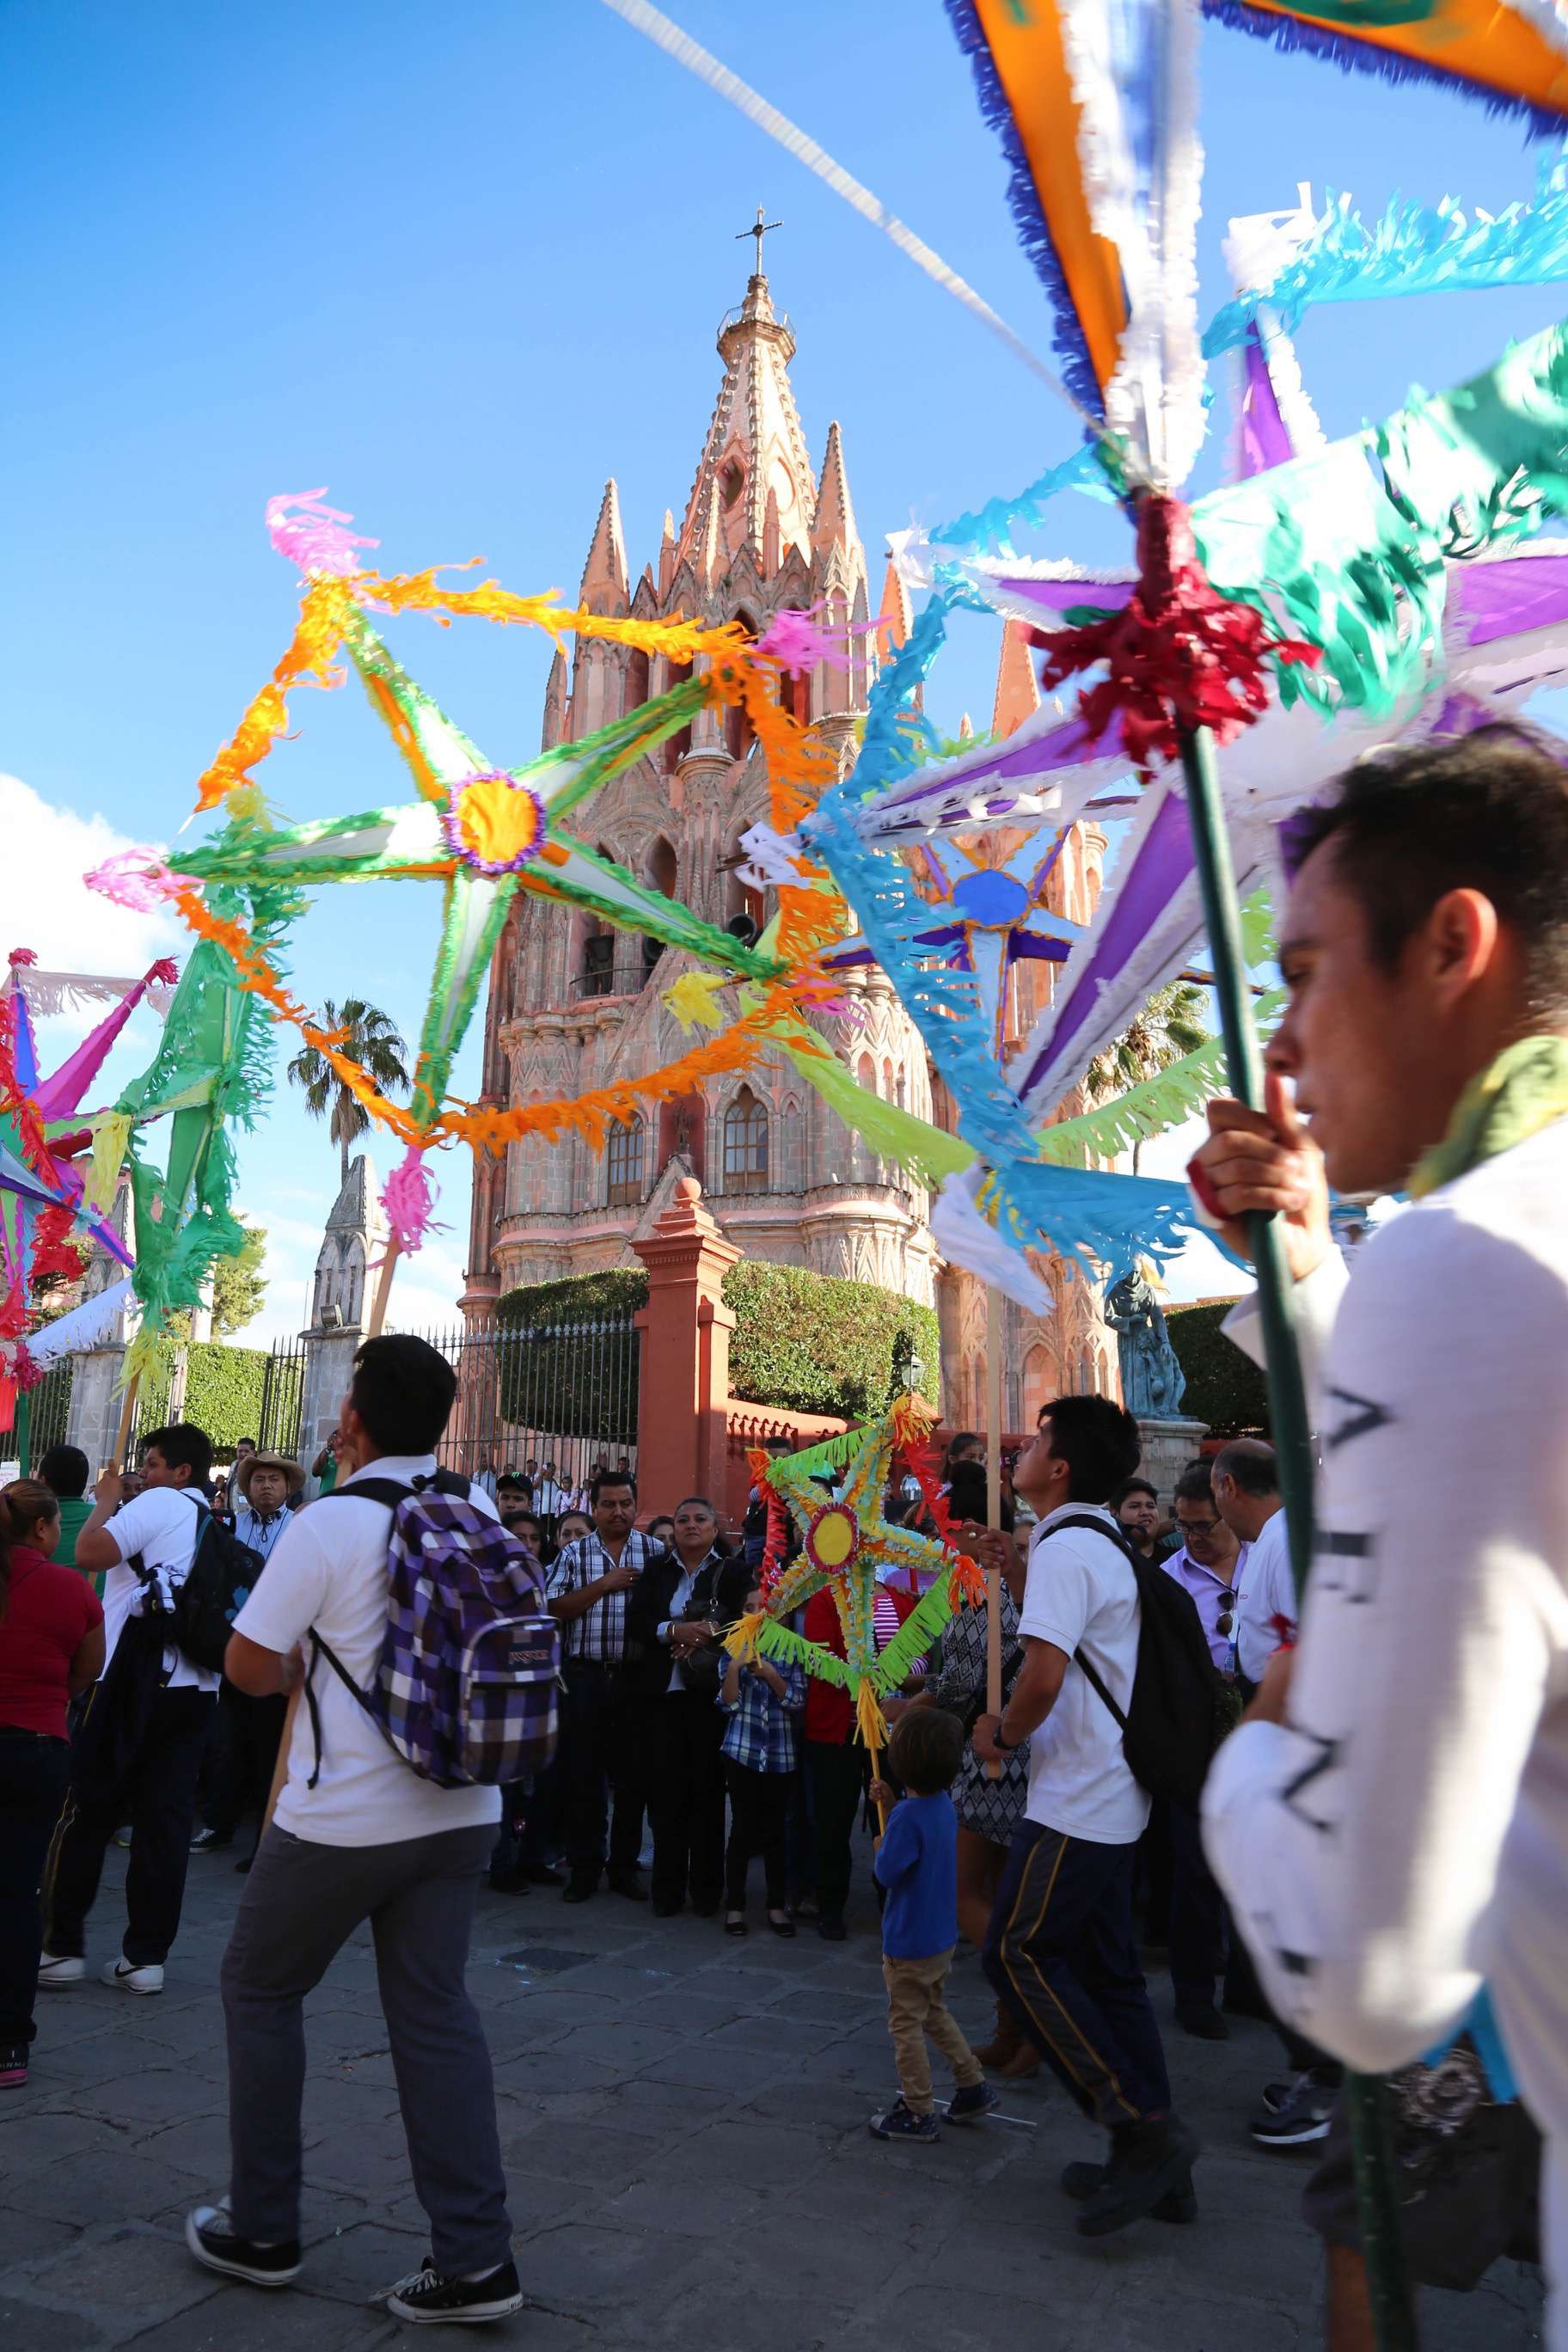 The parades in San Miguel de Allende may not be as tightly choreographed as in California or New York, but they make up for it in enthusiasm.